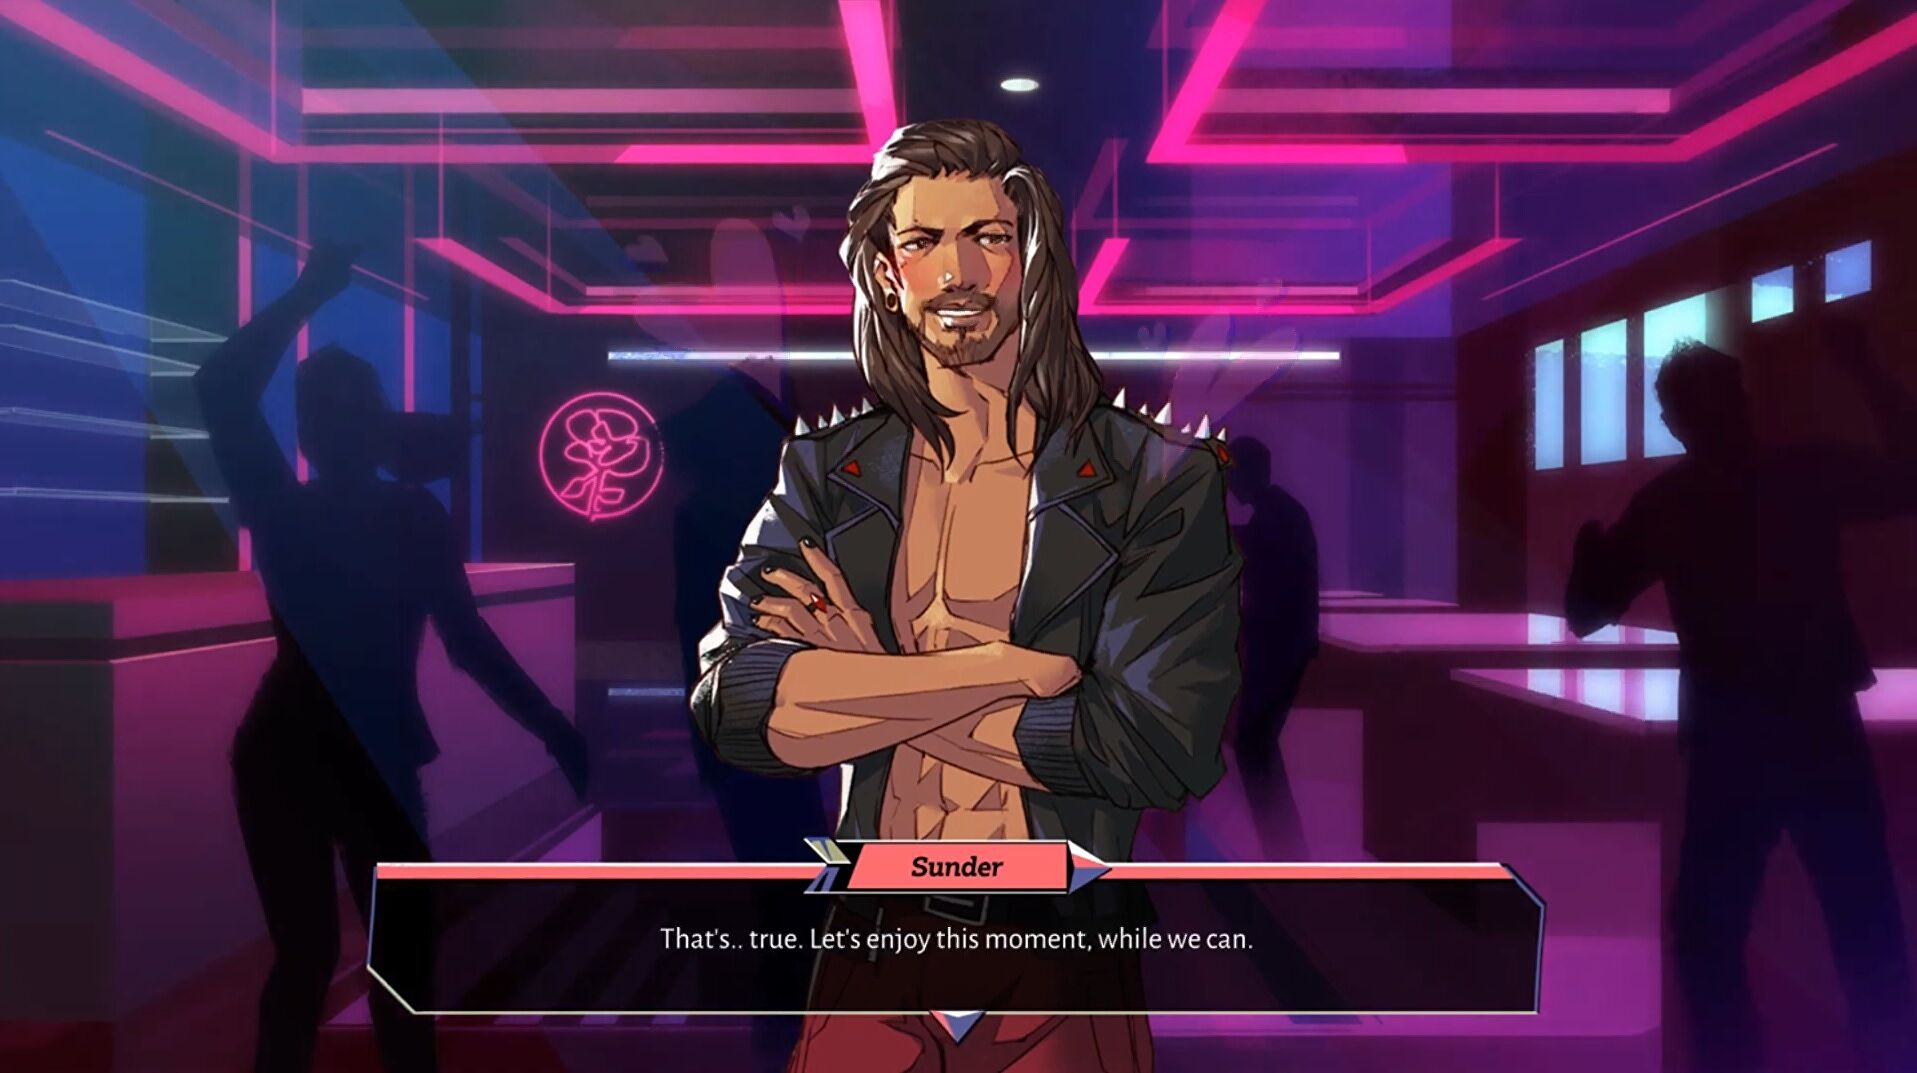 At last, Boyfriend Dungeon launches this year, on Game Pass for PC too